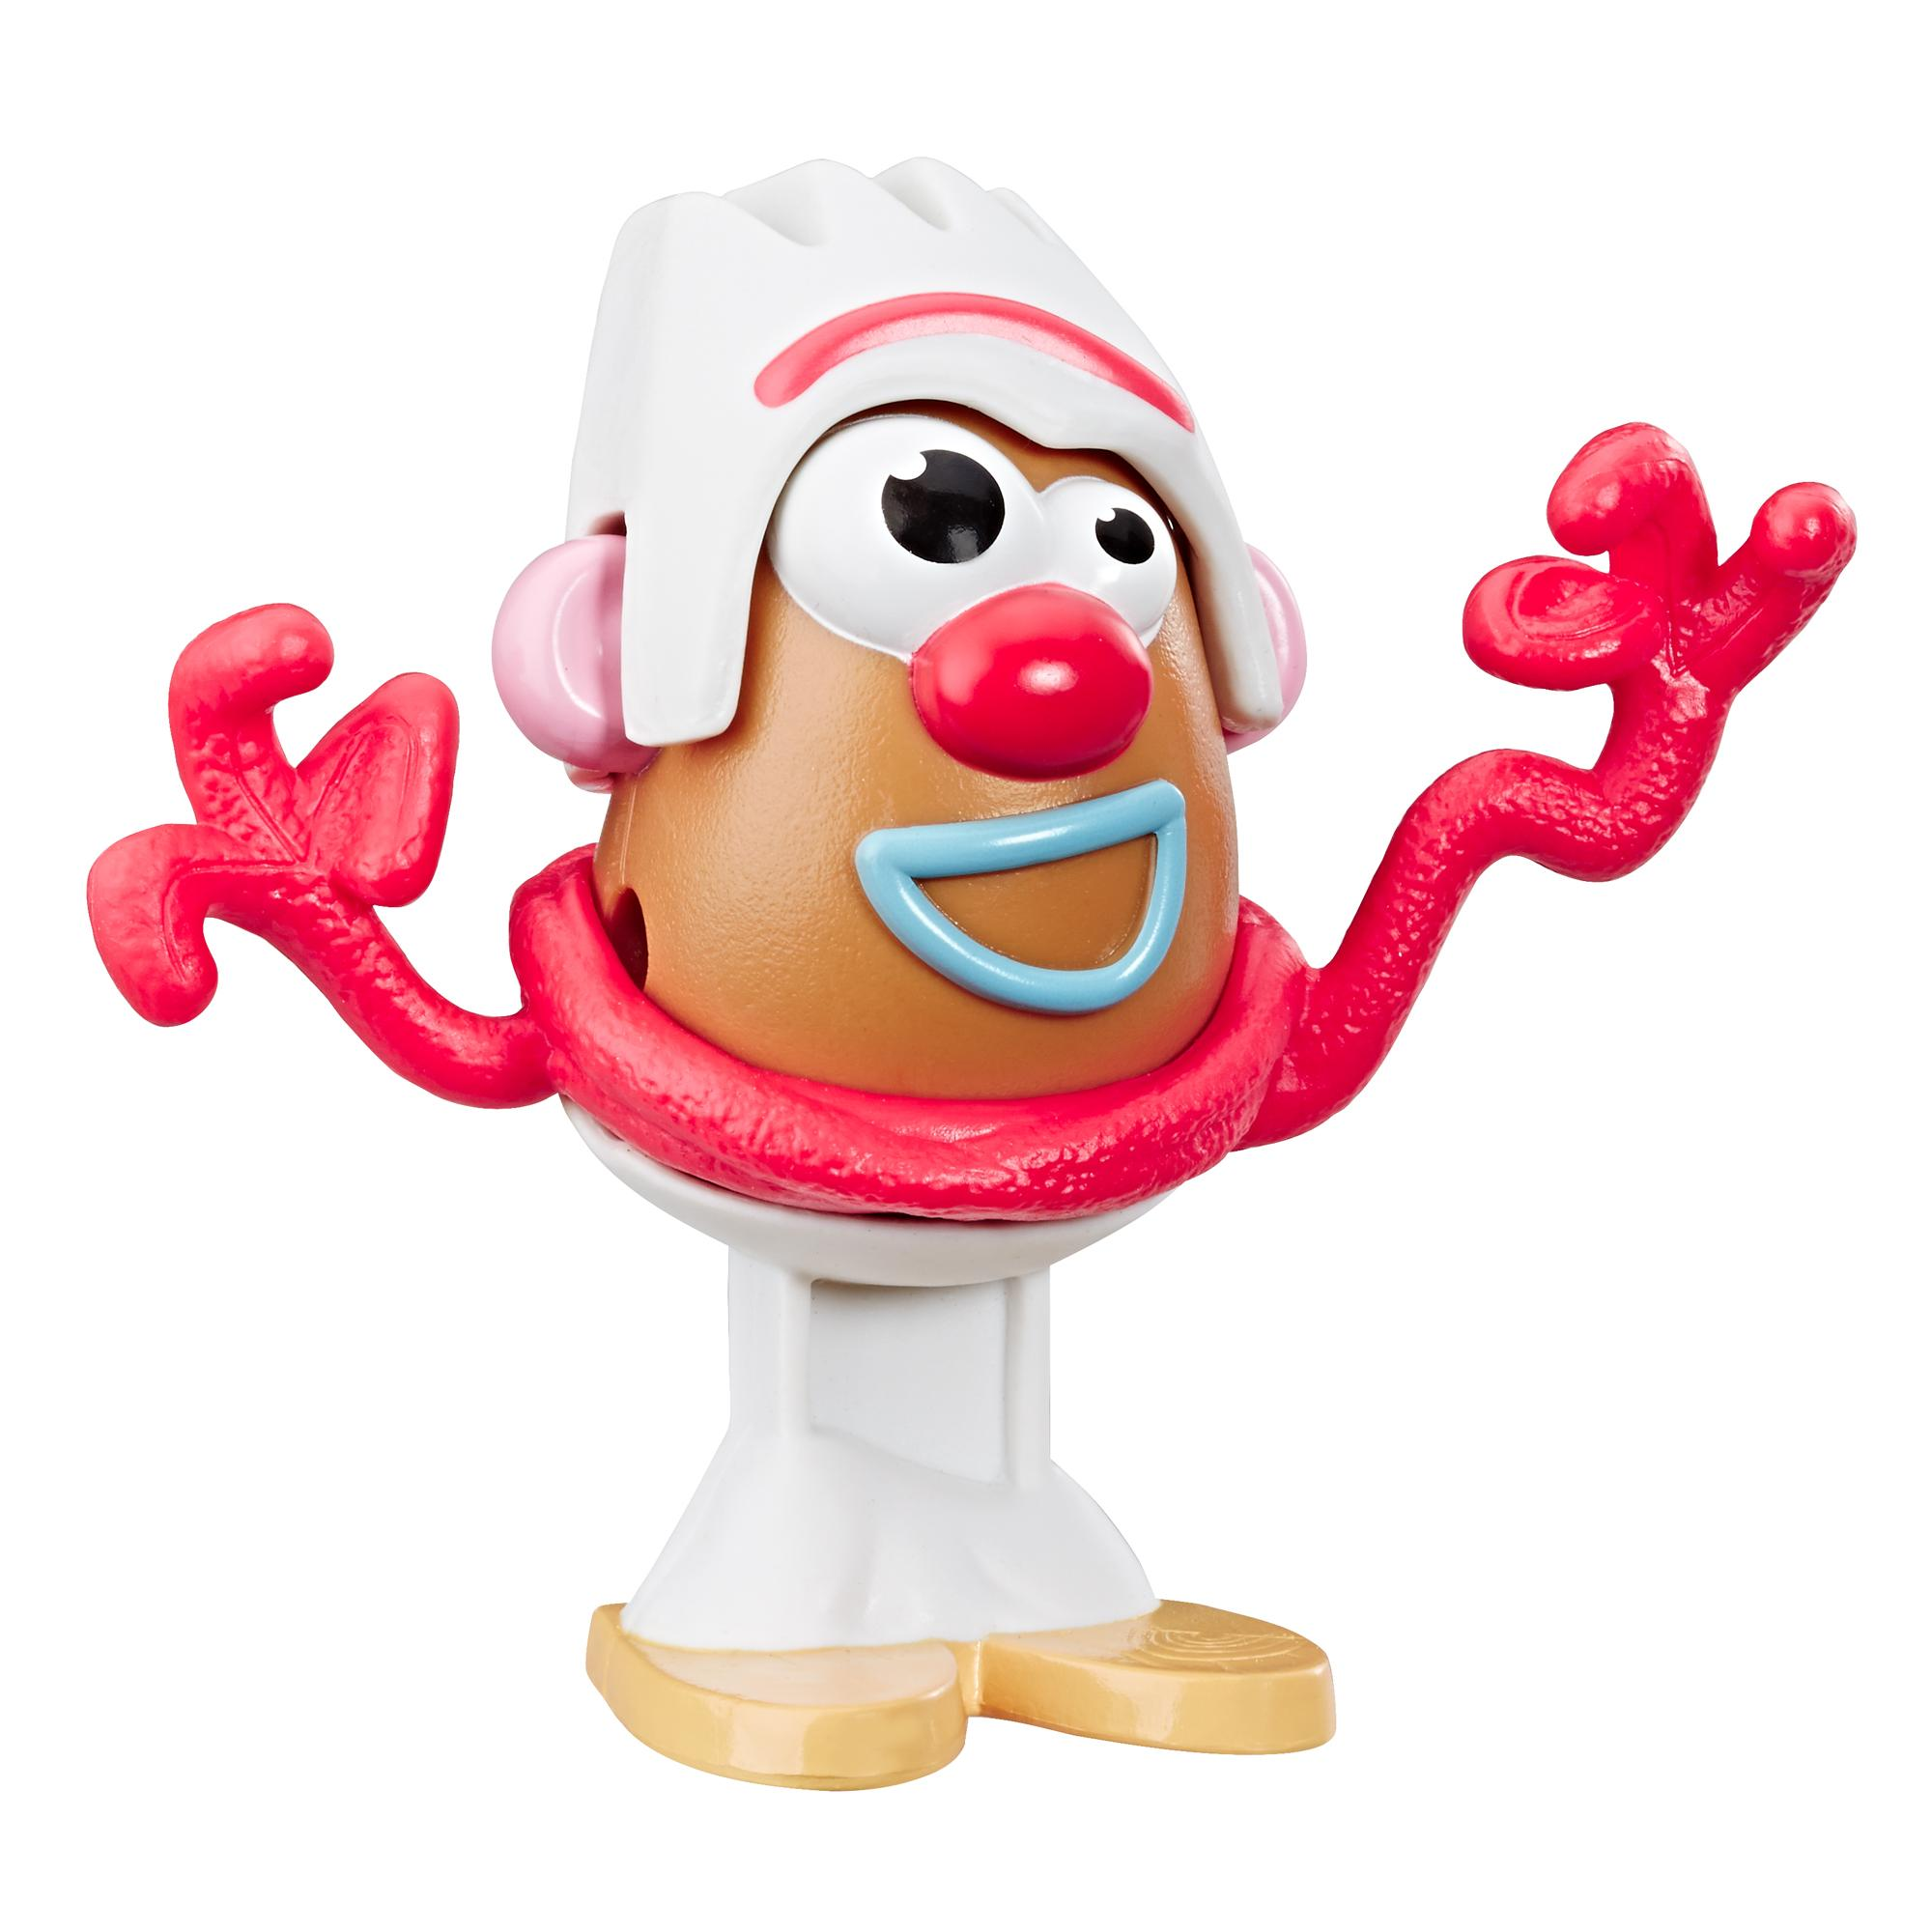 Mr Potato Head Disneypixar Toy Story 4 Forky Mini Figure